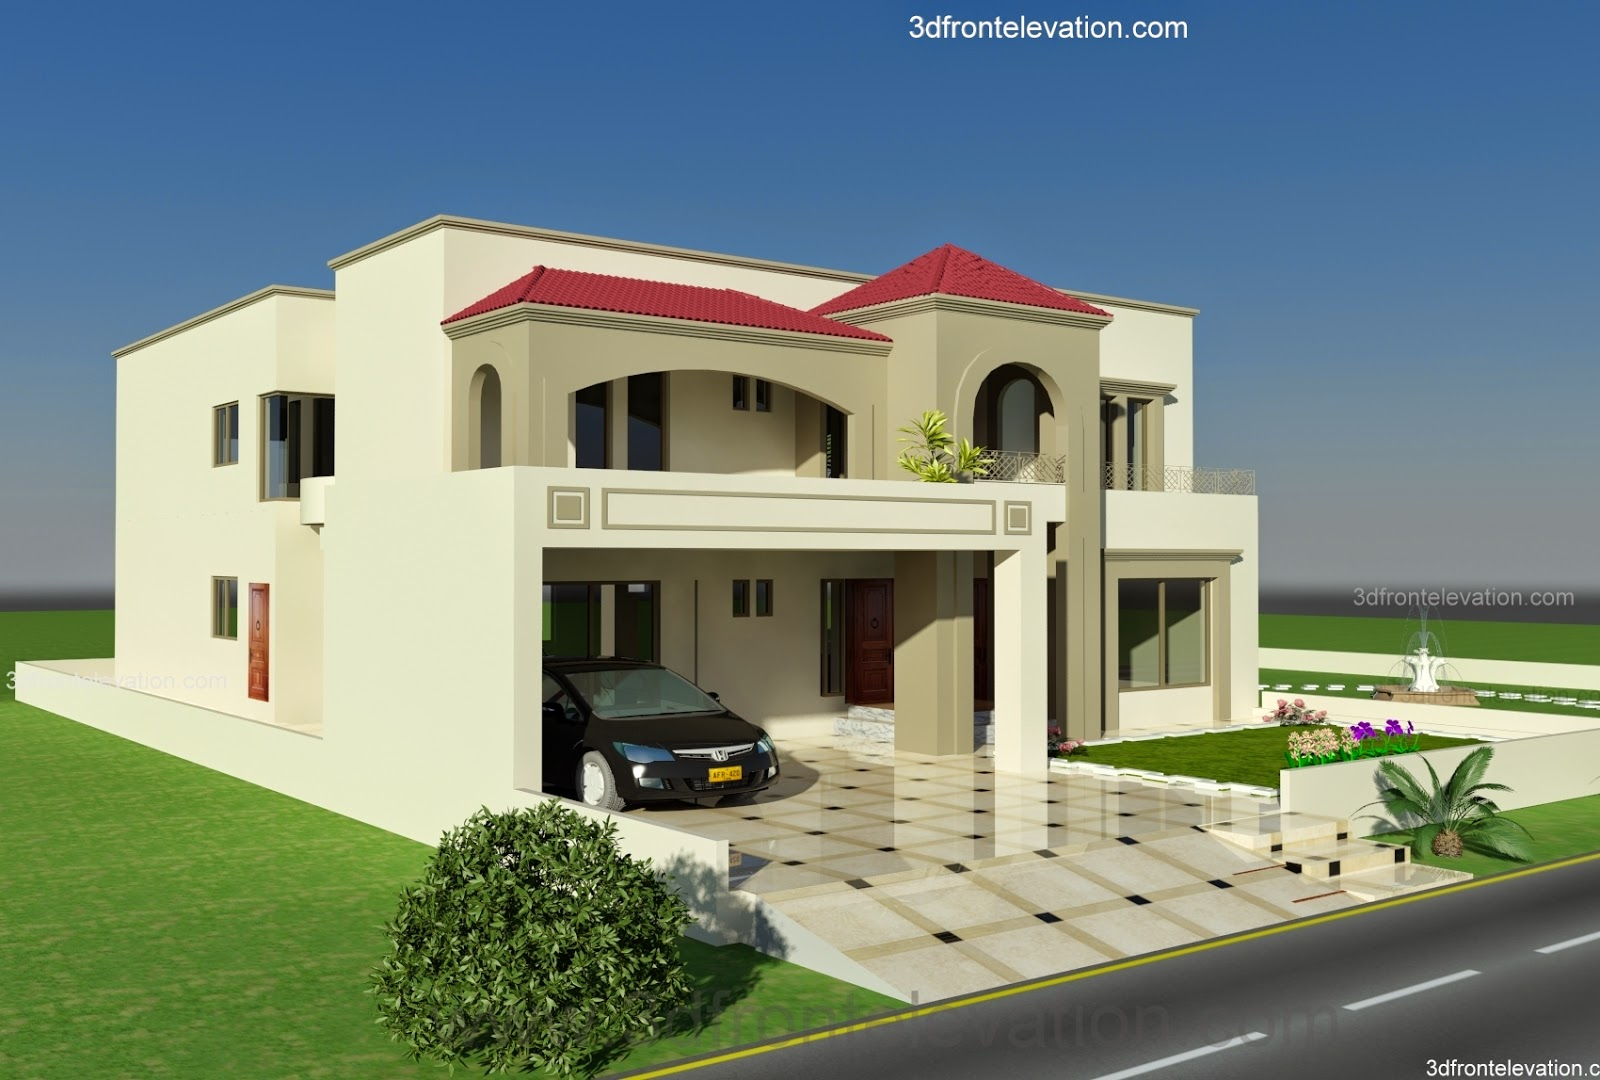 Kanal Plot House Design Europen style in Bahria Town, Lahore ...